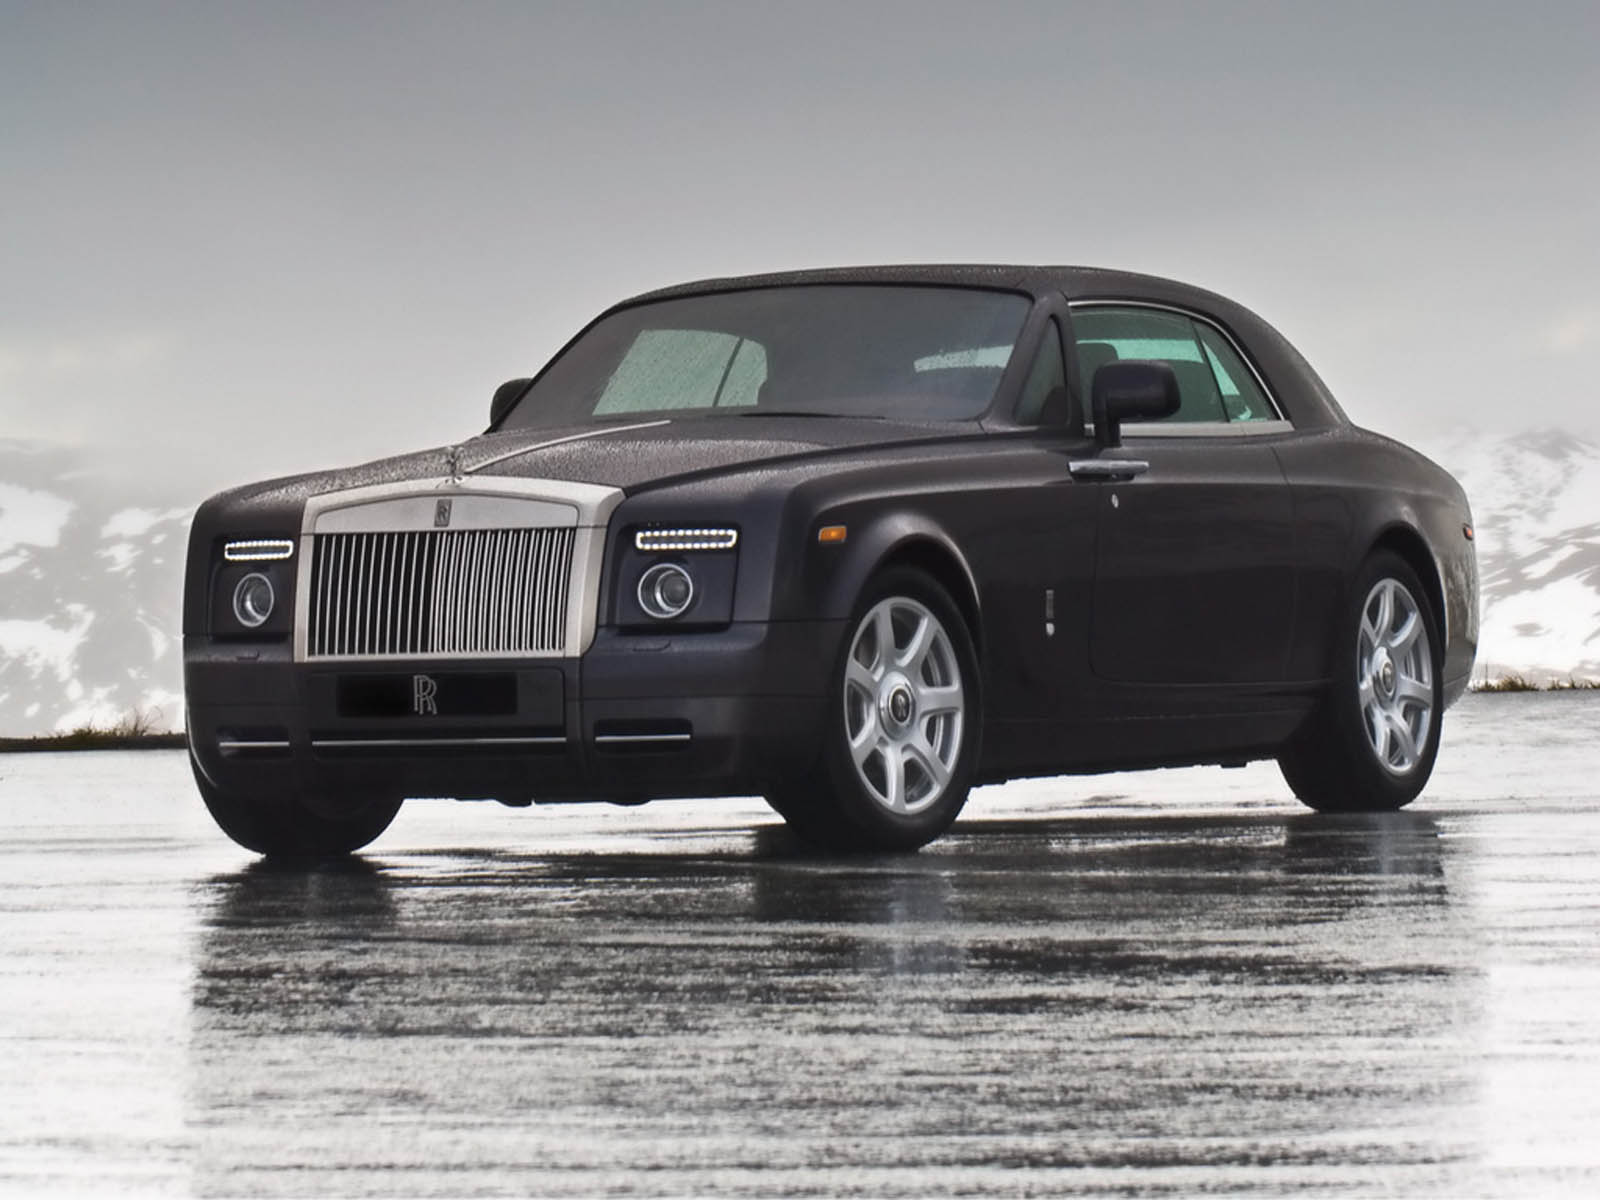 Rolls royce phanthom photo - 5